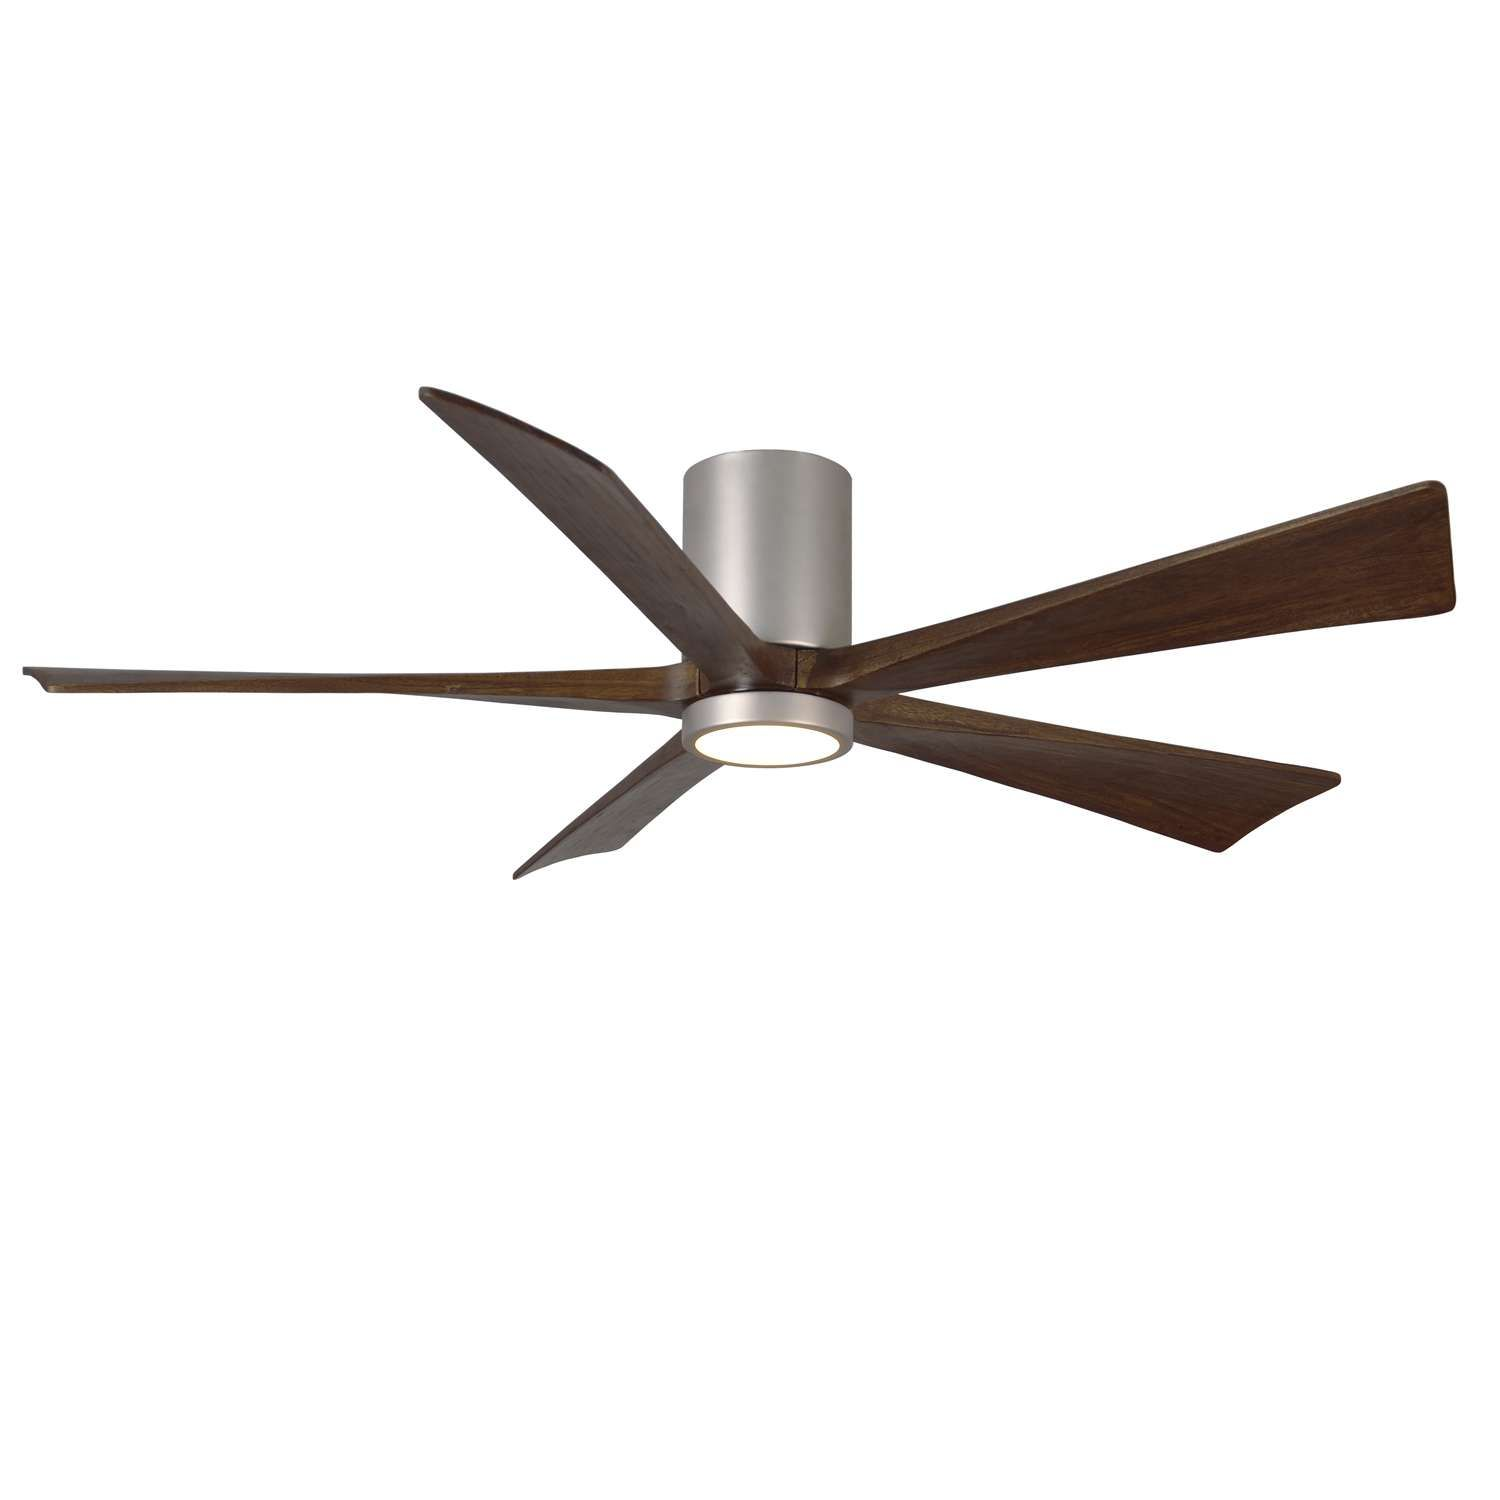 Modern ceiling fans for every kind of space matthews fan company irene 5 blade hugger lk ceiling fan ylighting aloadofball Images